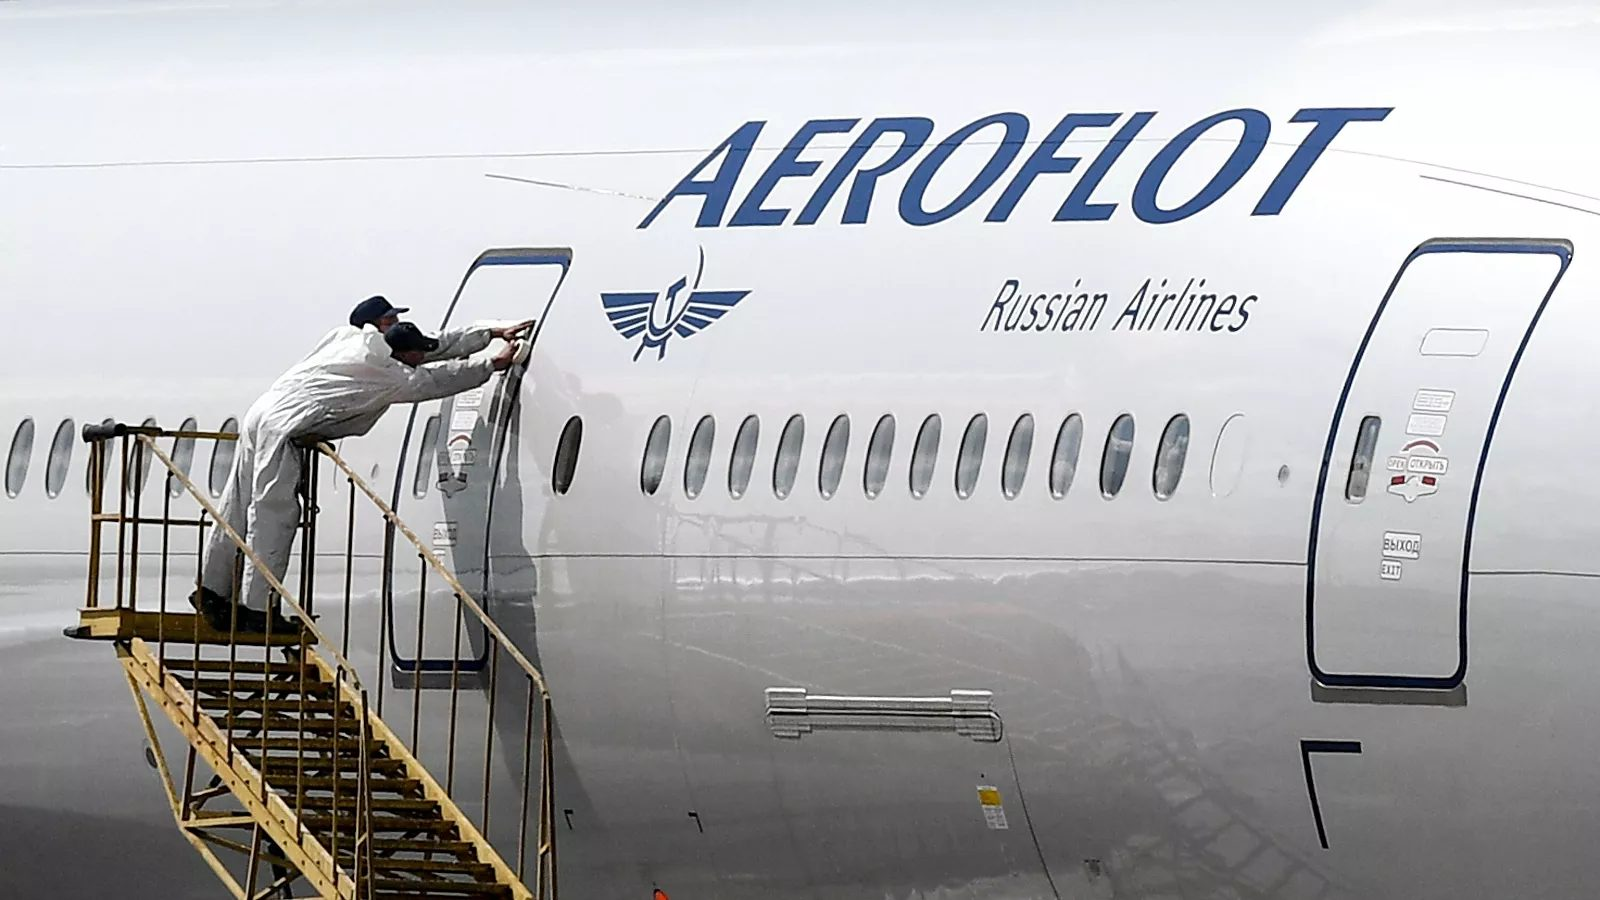 Aeroflot London Executive Arrested In Moscow And Charged With Spying For British Intelligence